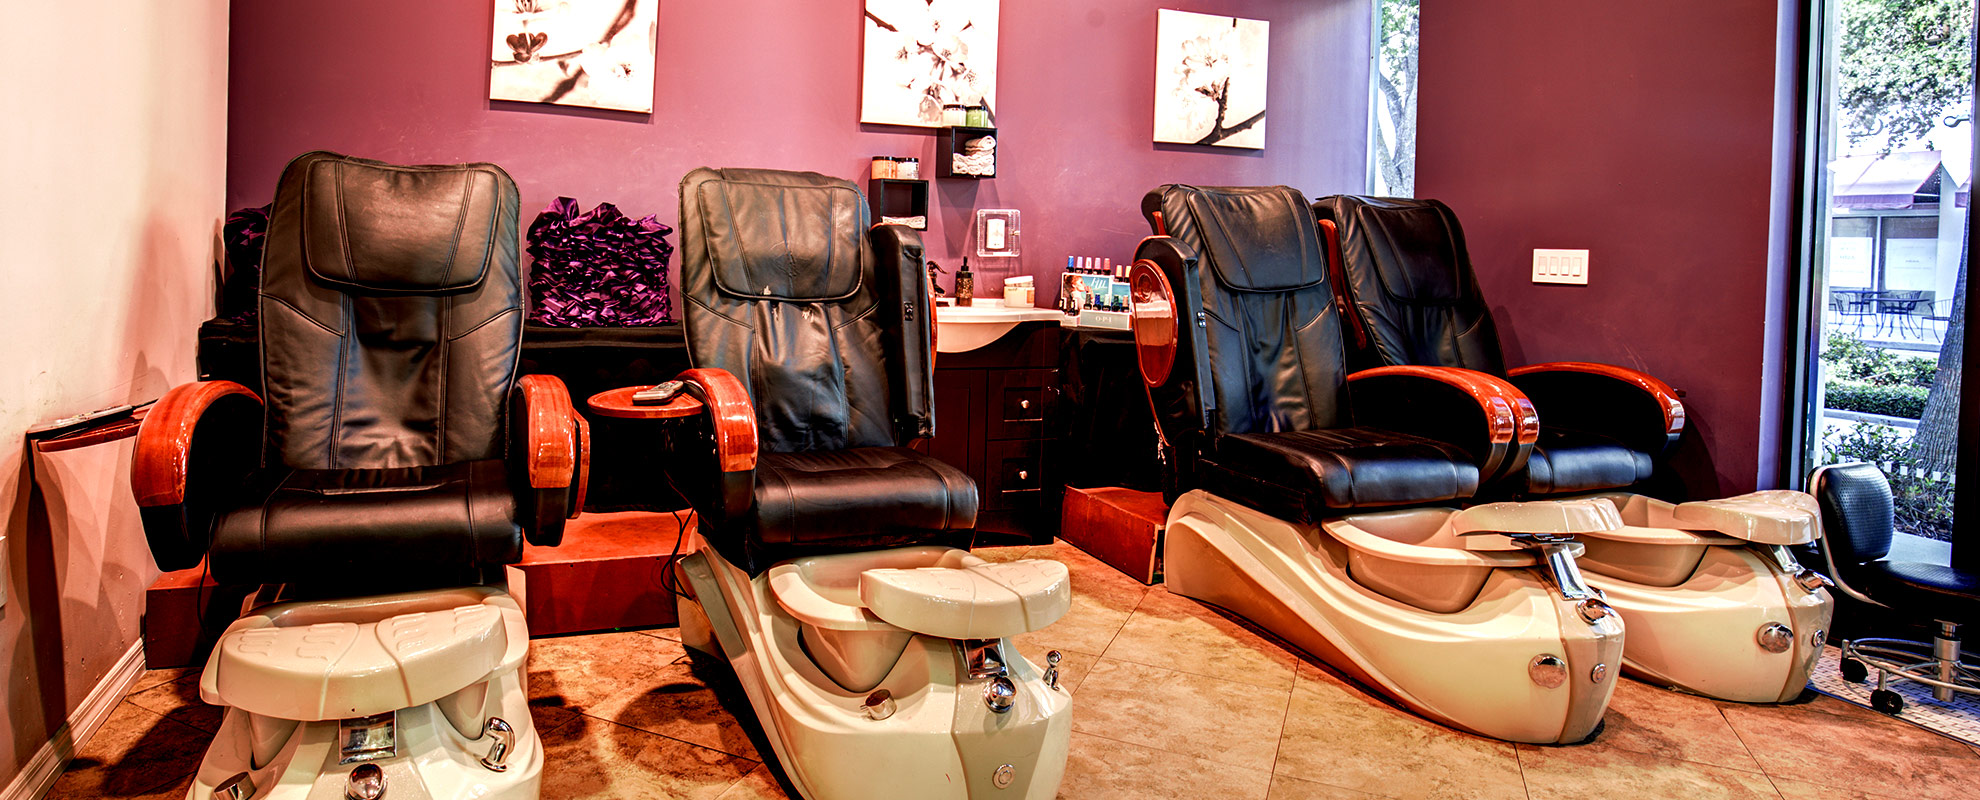 Instyle Hair Salon Massage Chairs